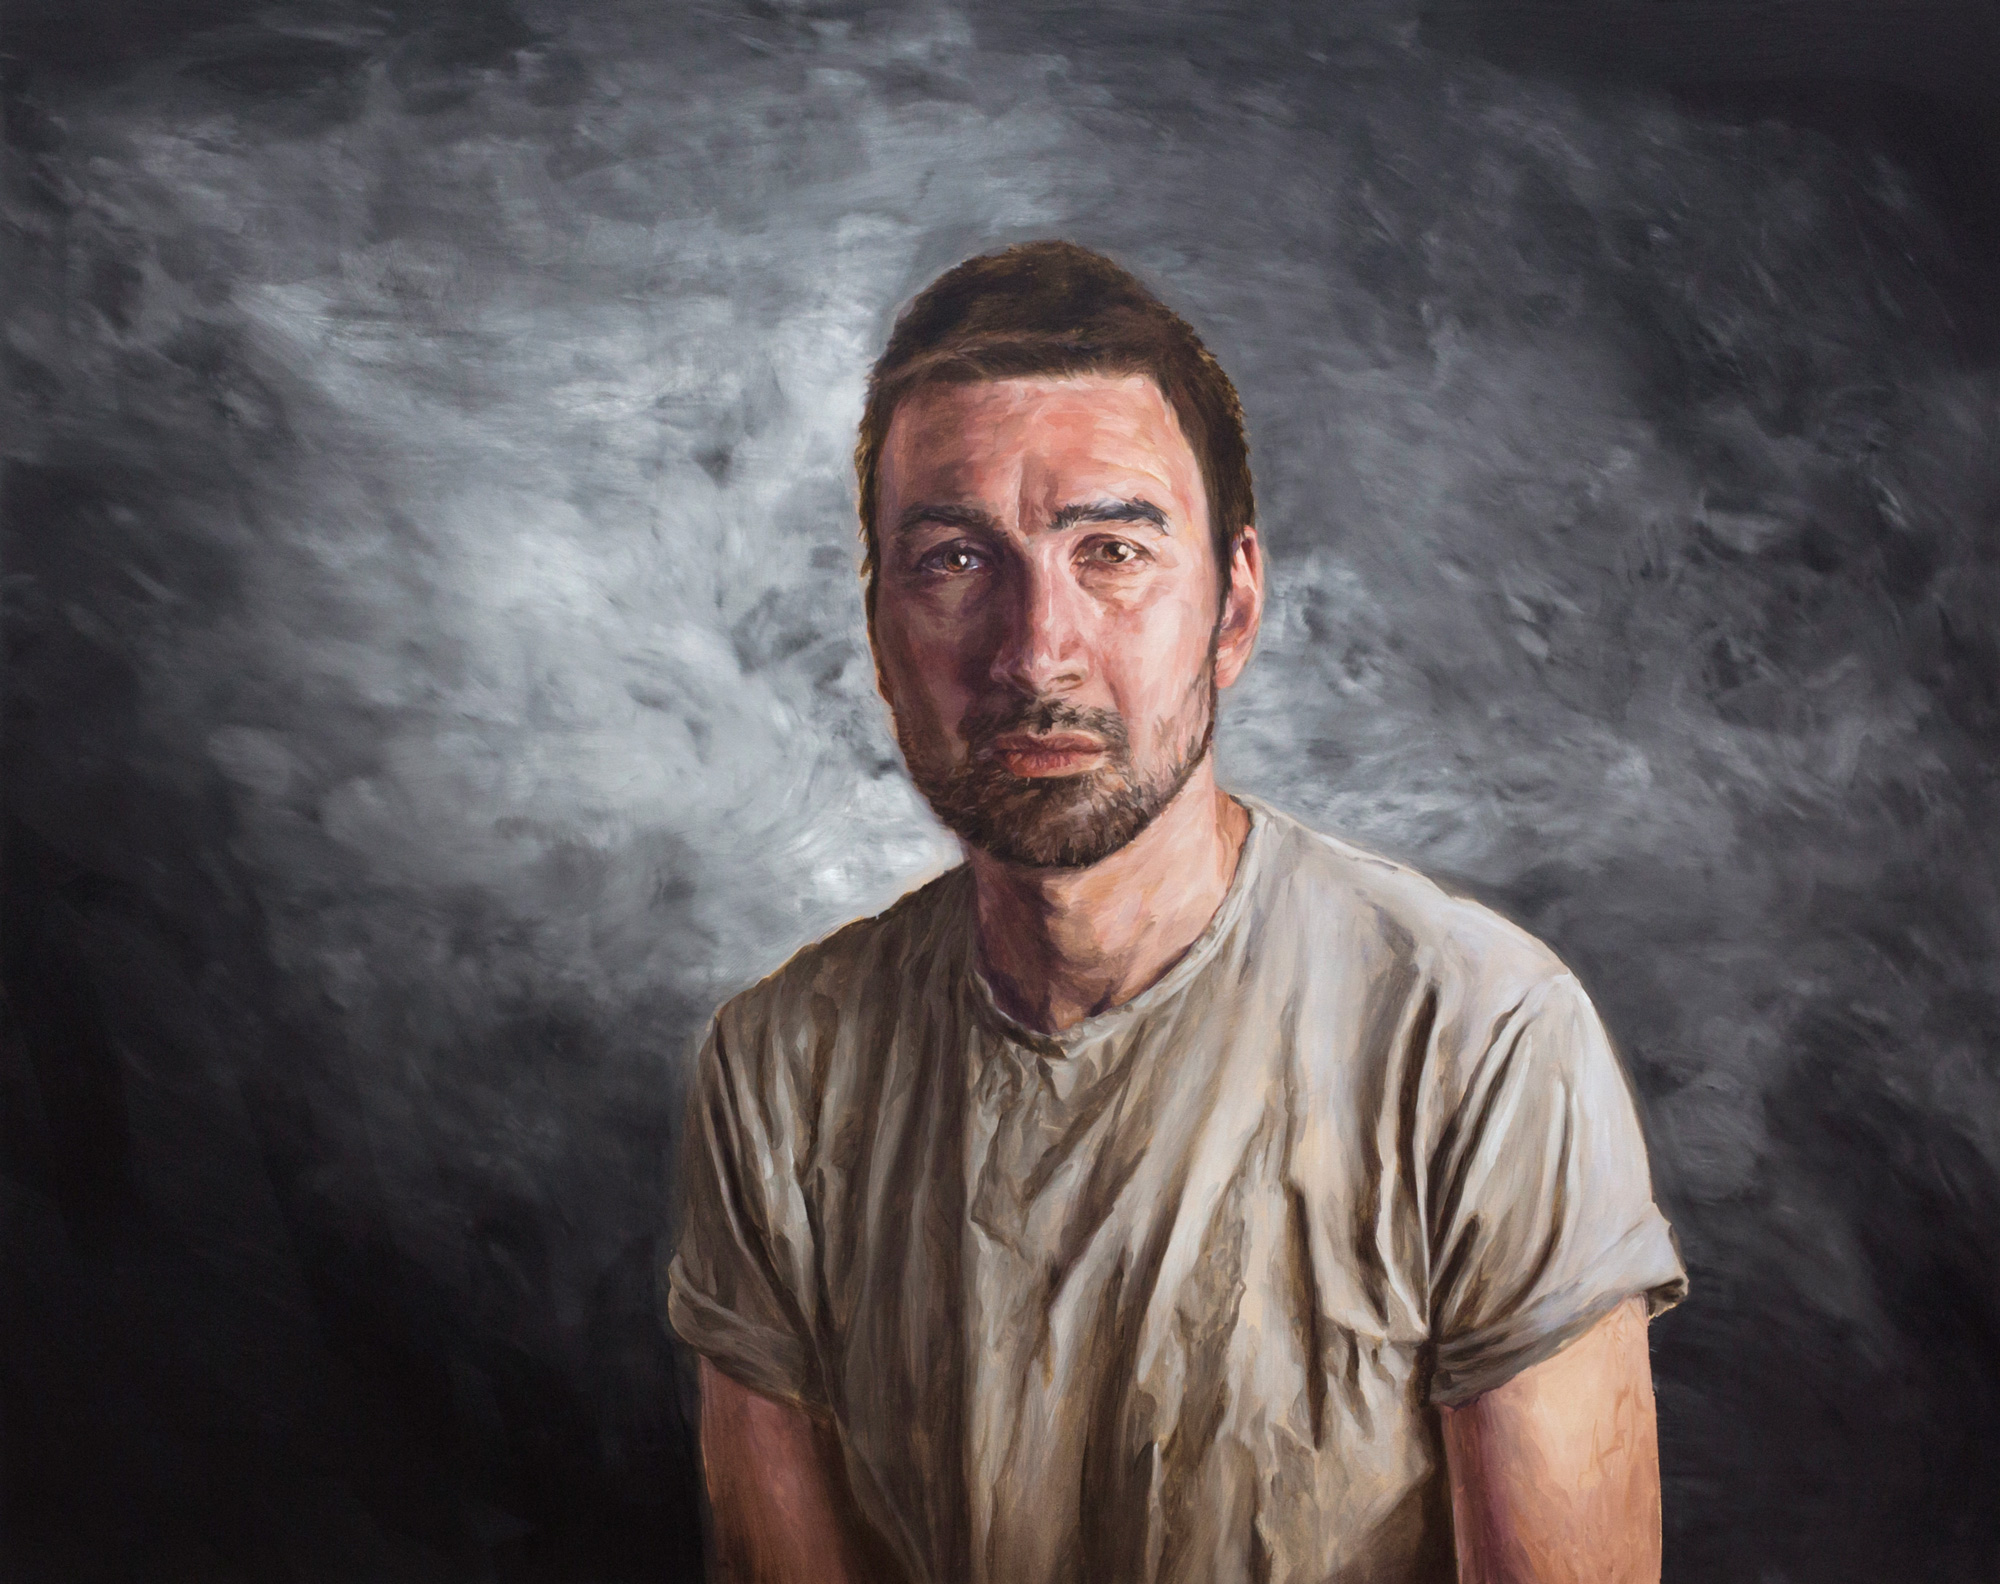 The Incredible Likeness of Being Self-Portrait No.3 2016 Oil on Canvas 59 x 75 inches 2016 Marc Straus Gallery